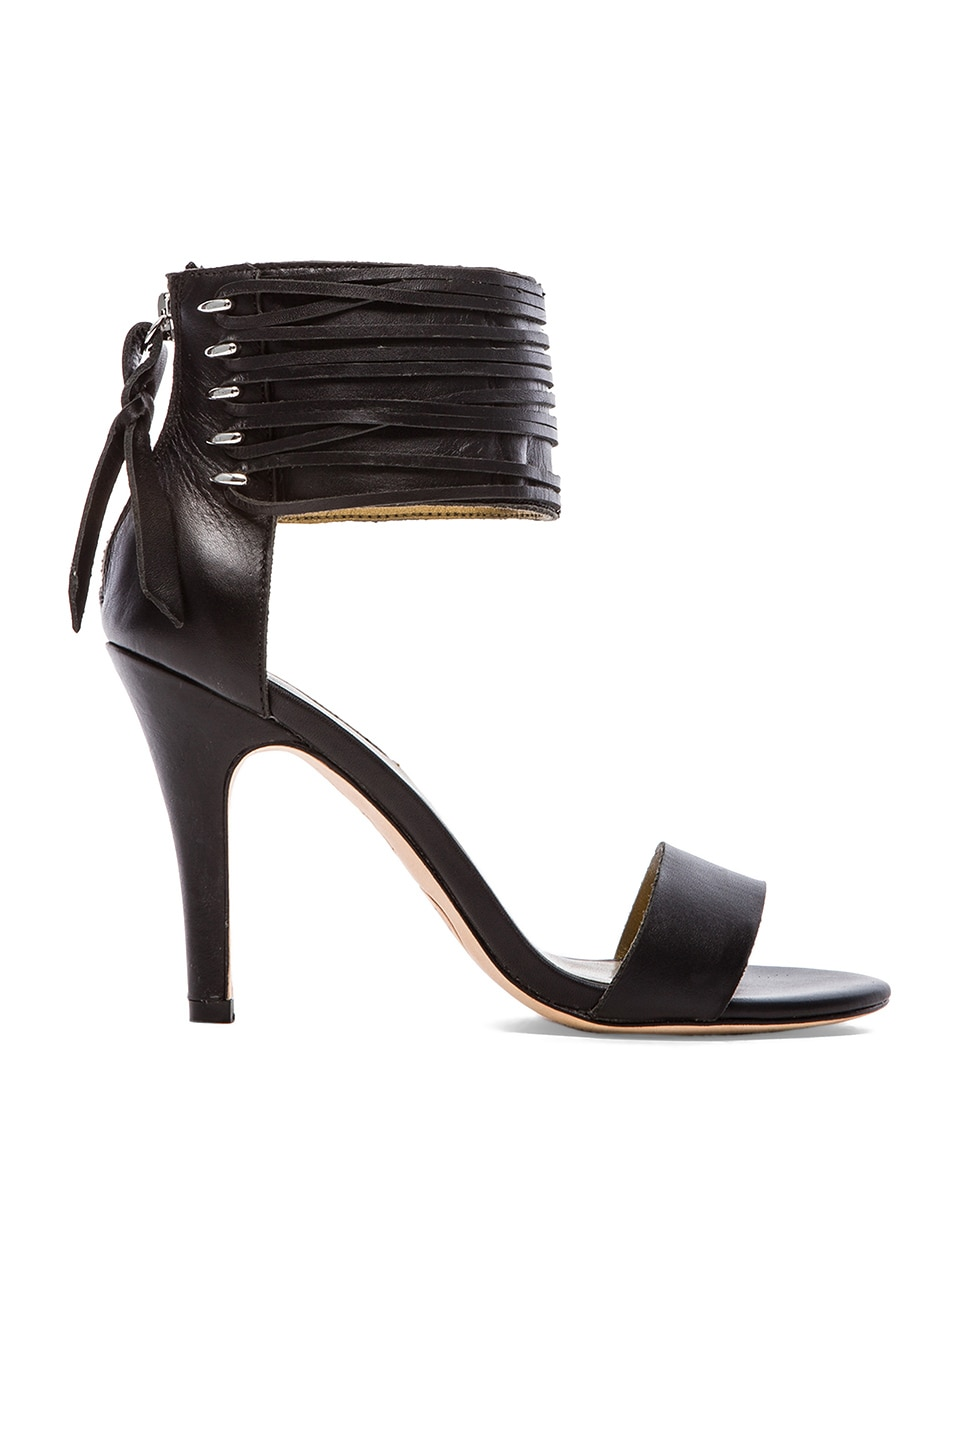 Twelfth Street By Cynthia Vincent Callie Woven Leather Lace Sandal in Black